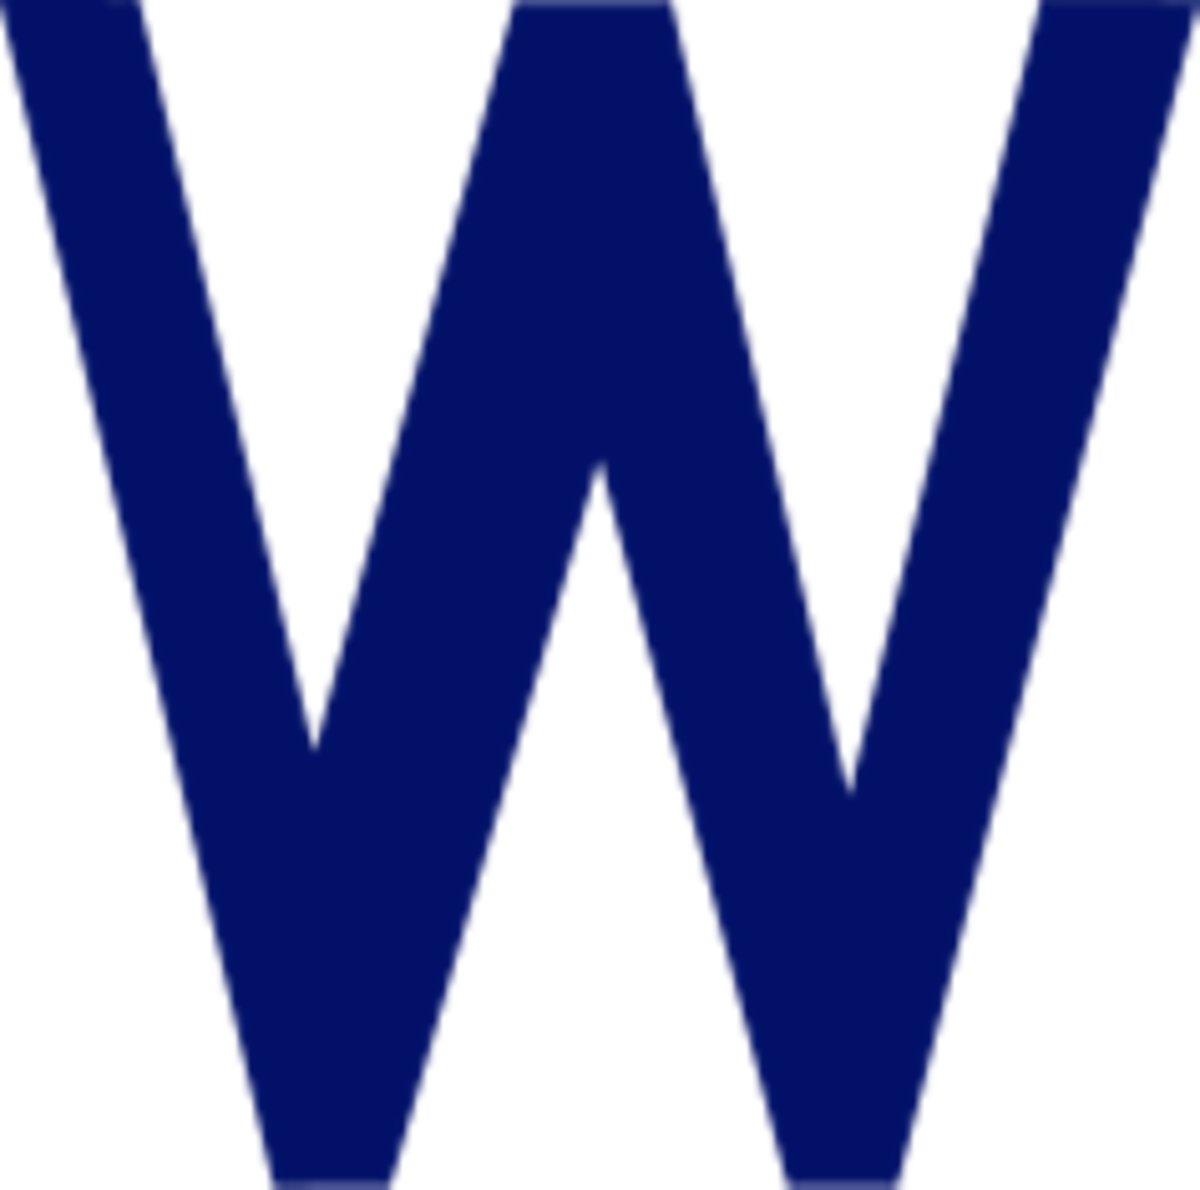 Washington Senators (original; 1901-1960)